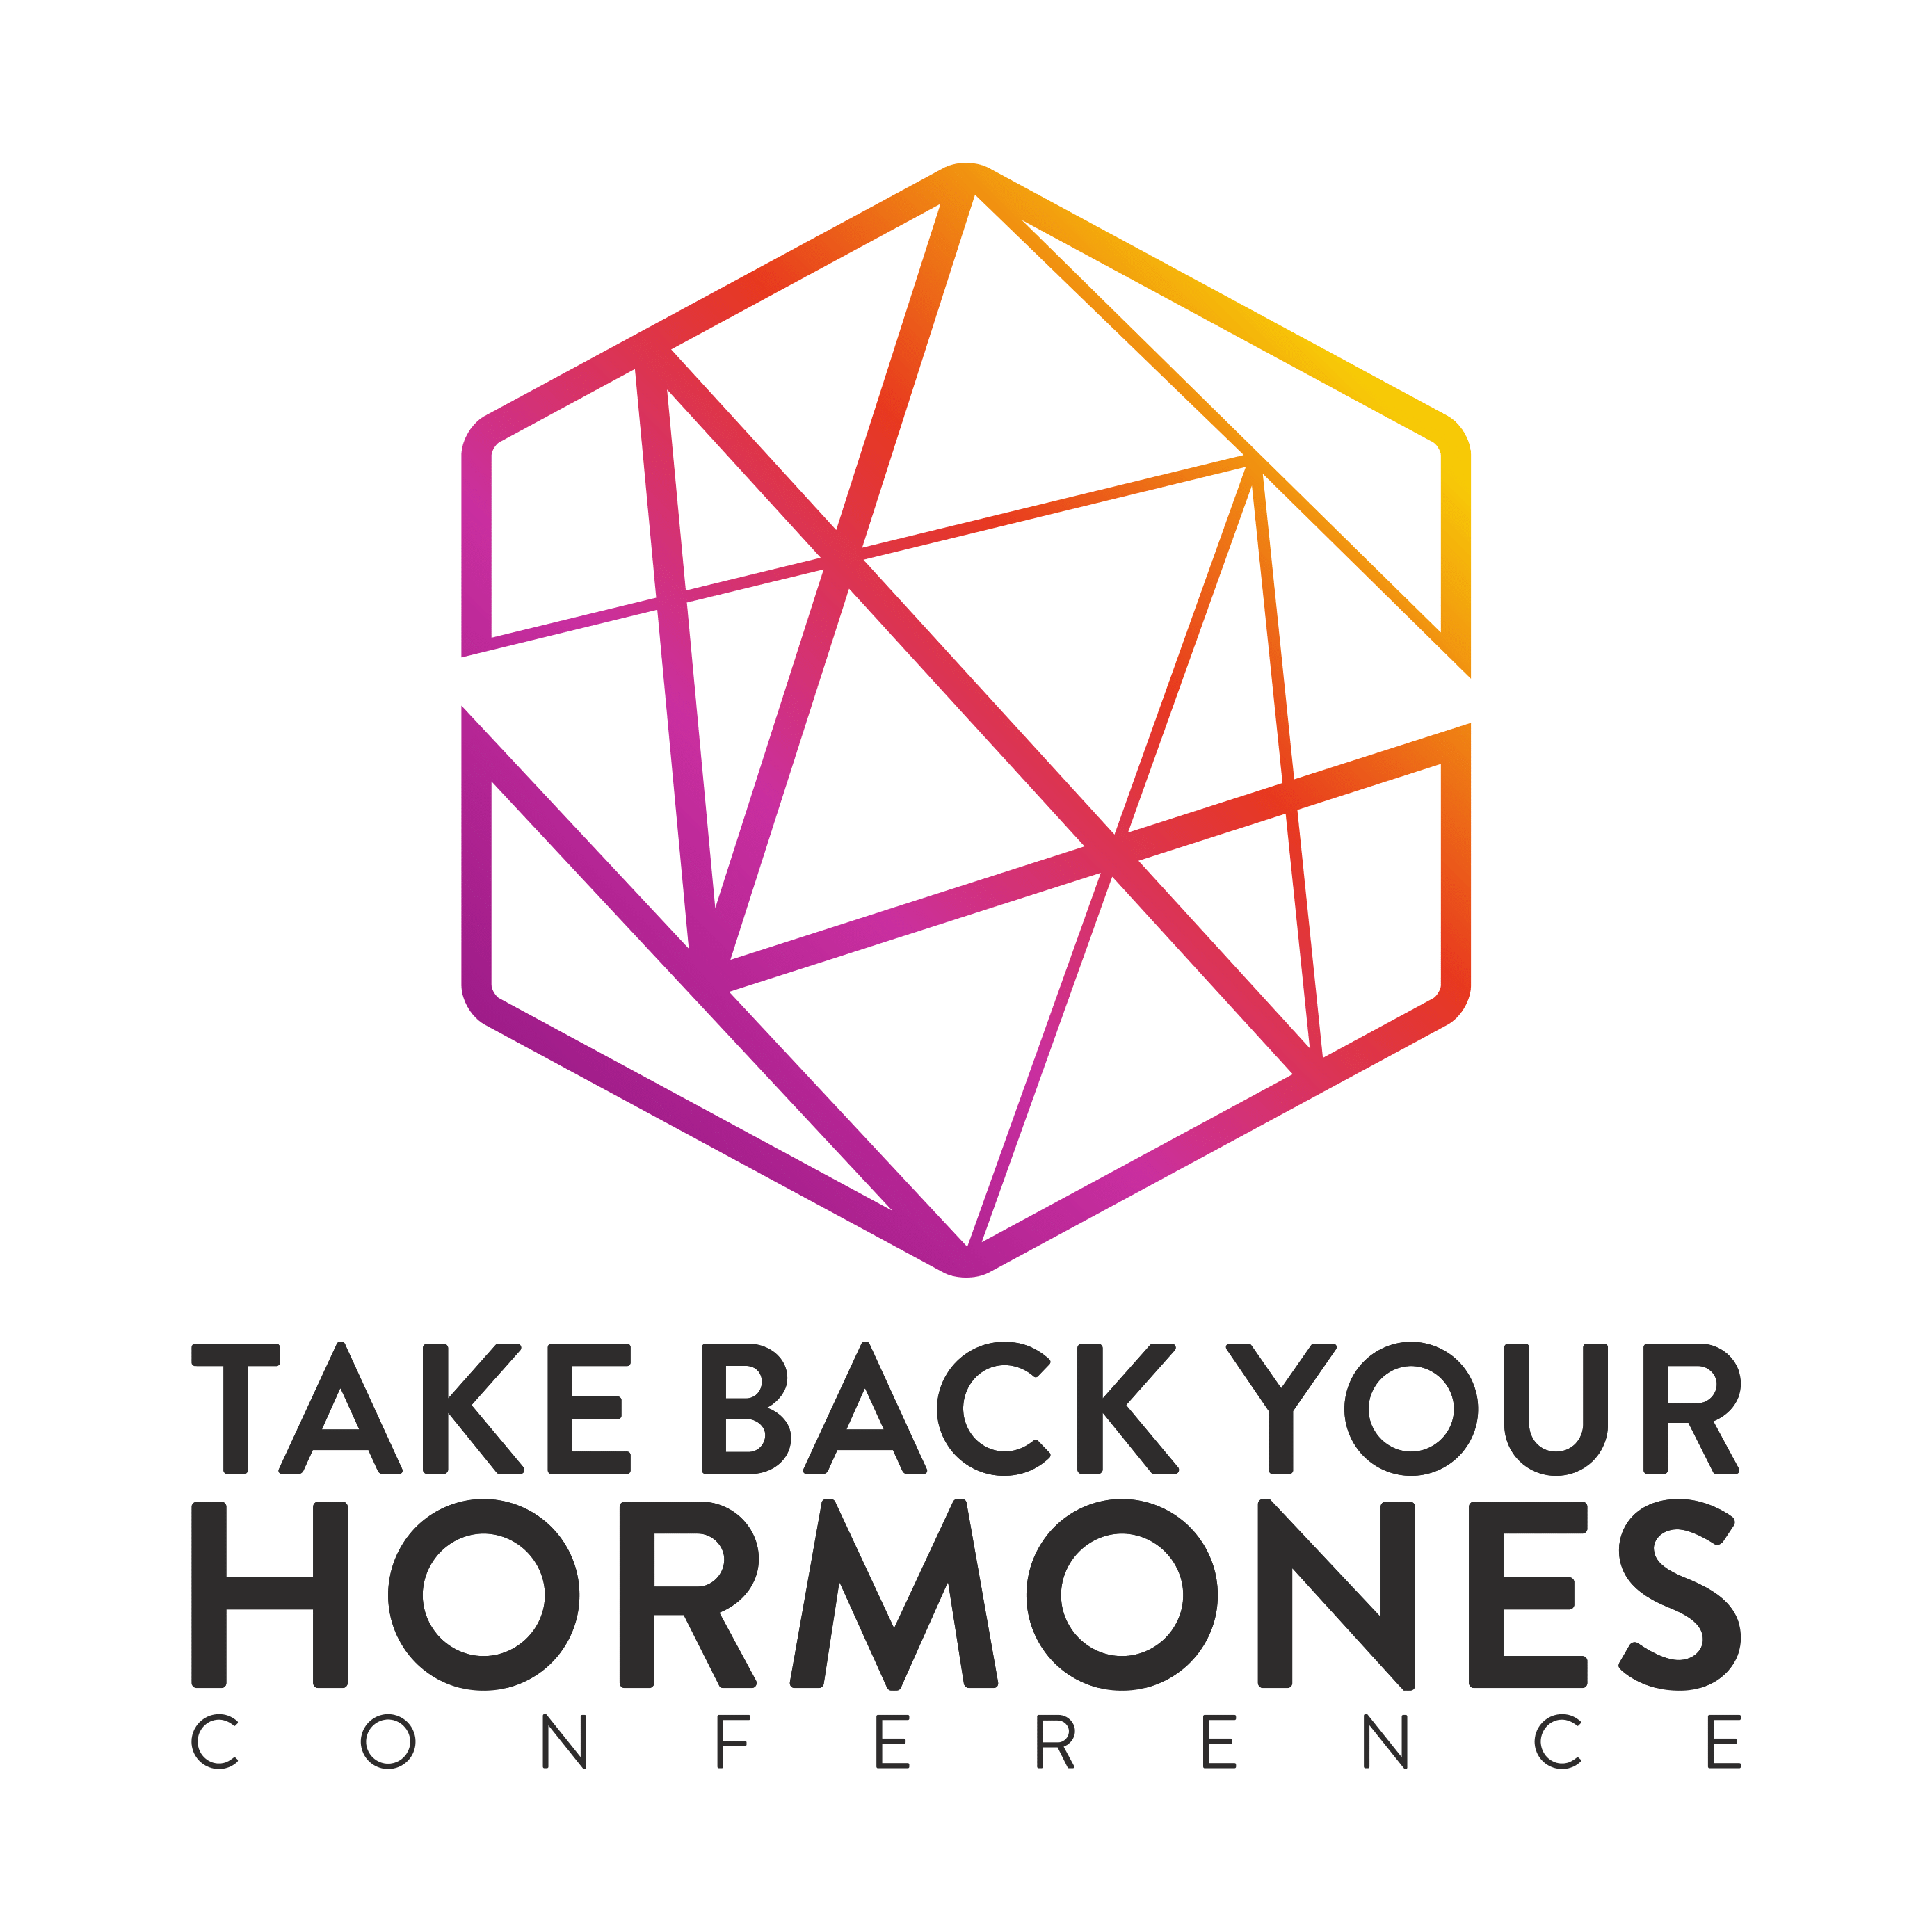 Take Back Your Hormones Conference